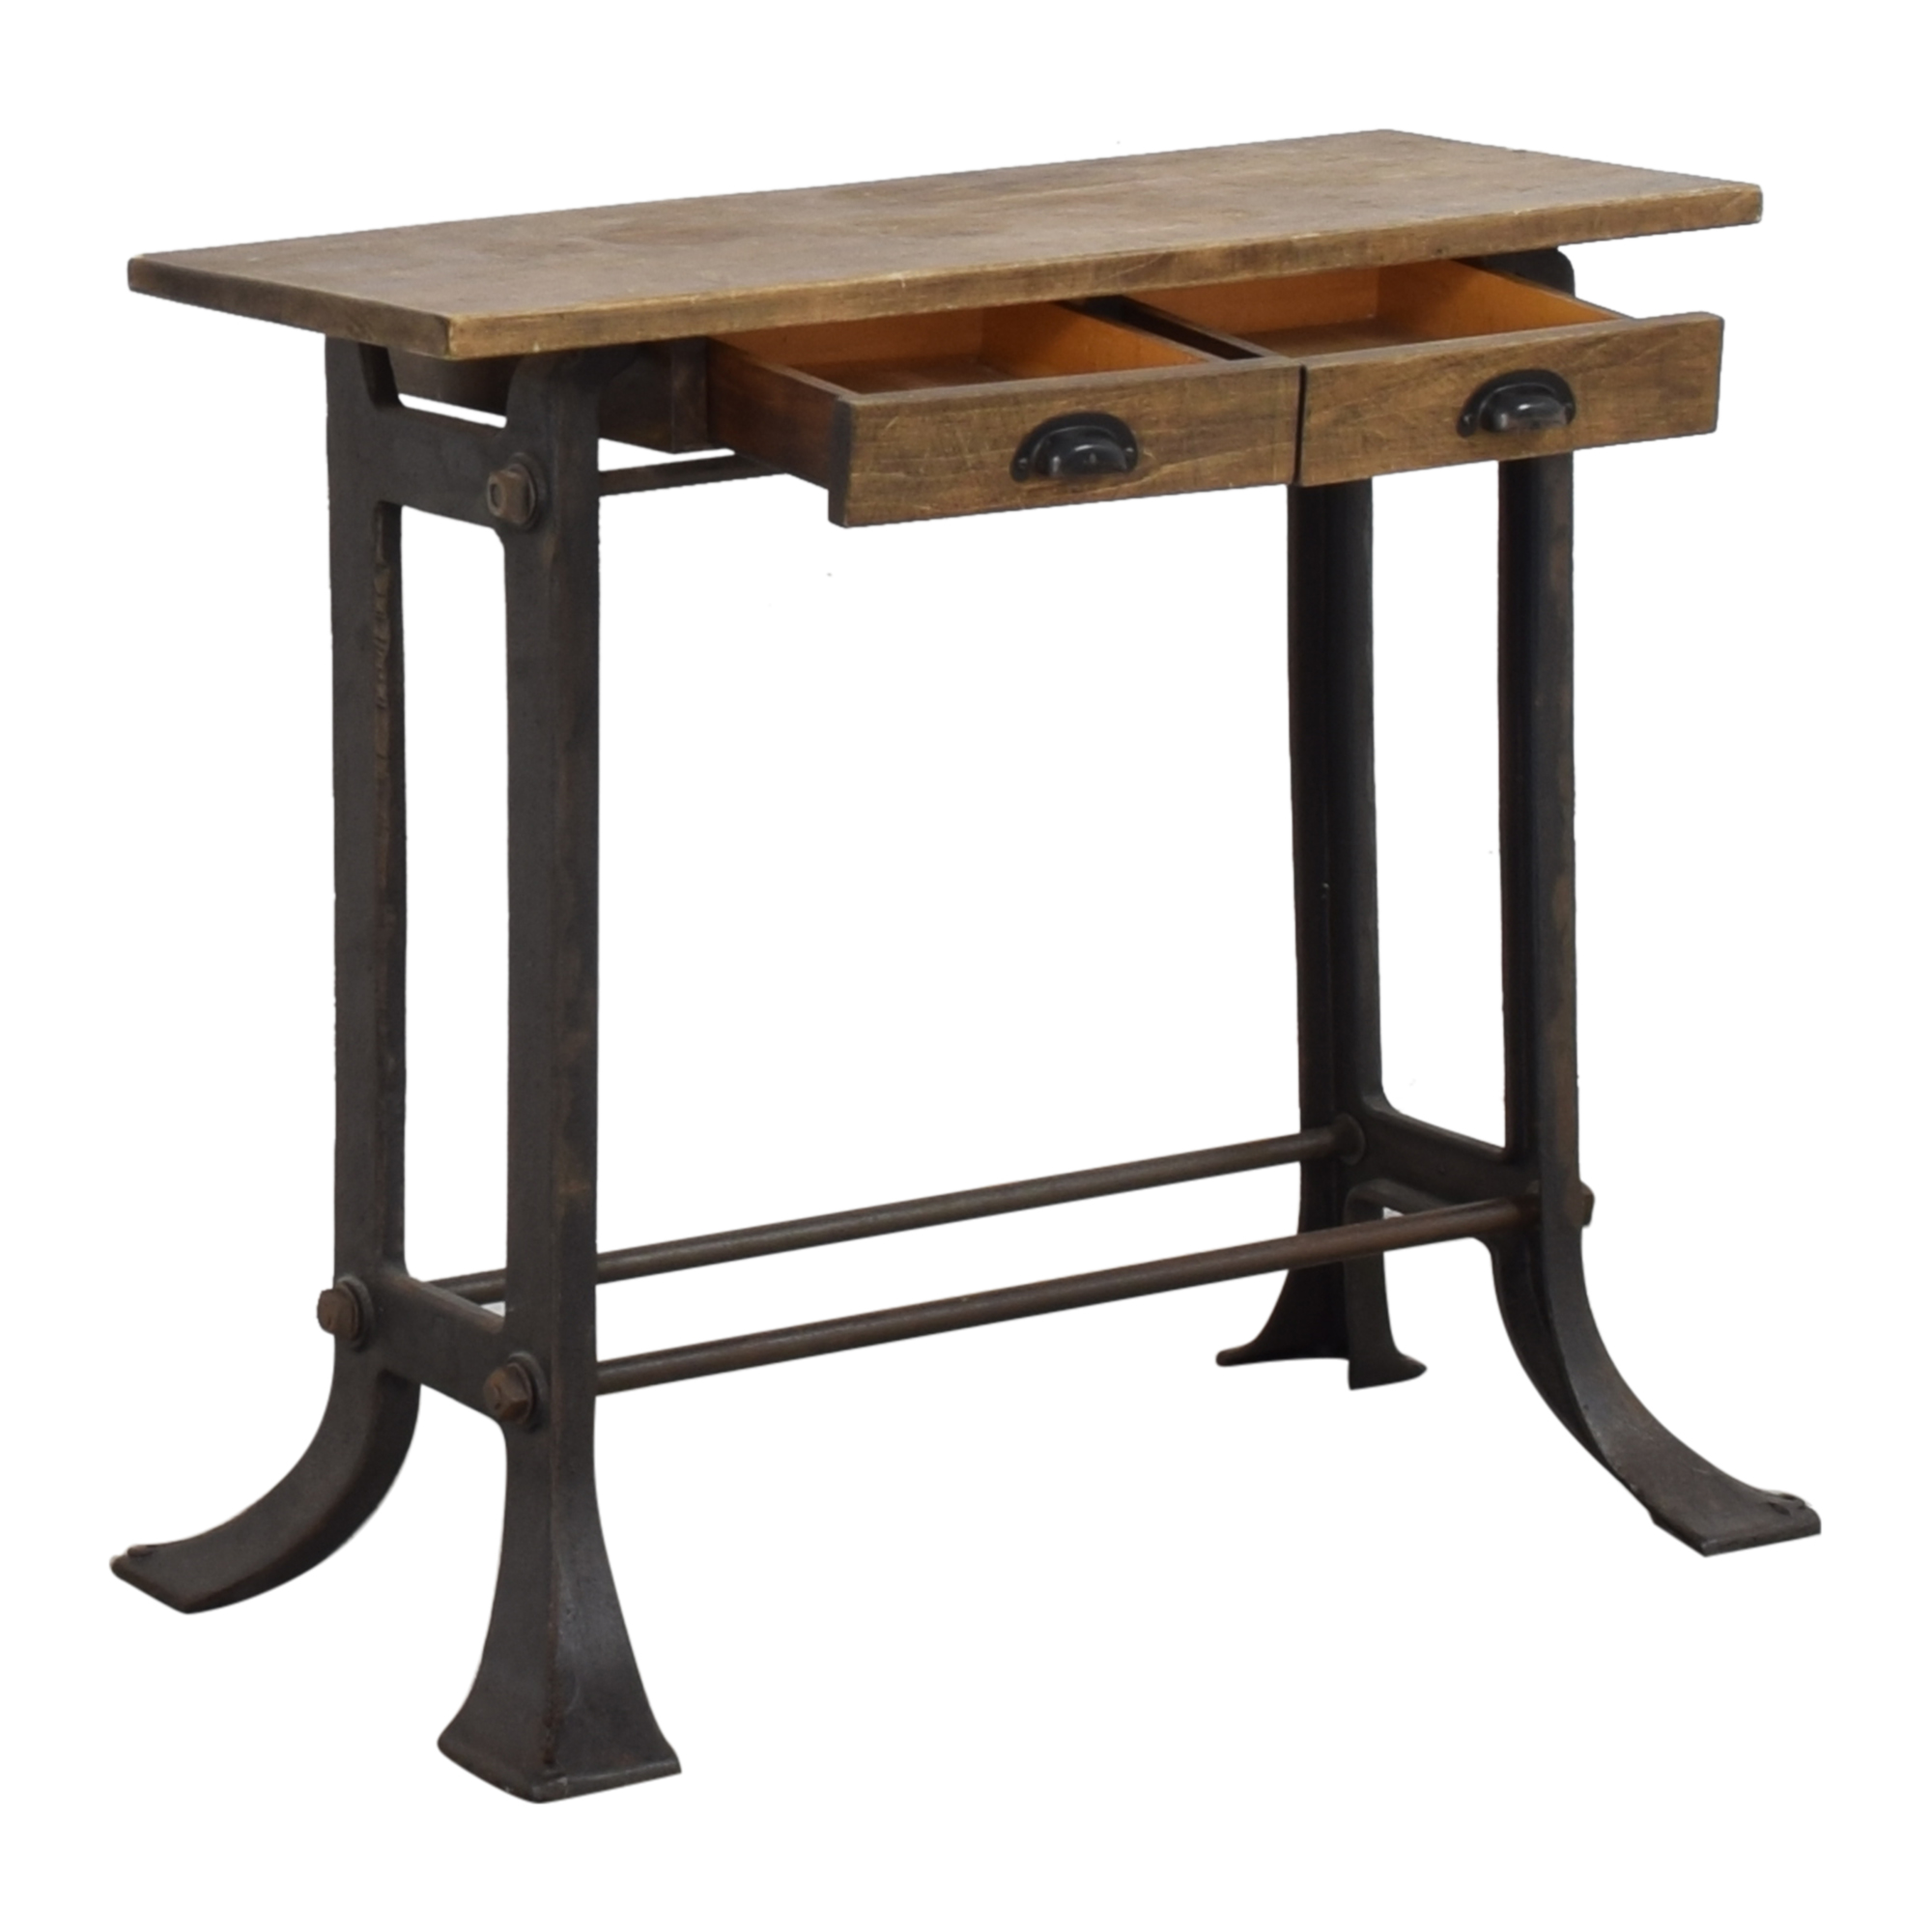 Get Back Get Back Industrial Console Table second hand